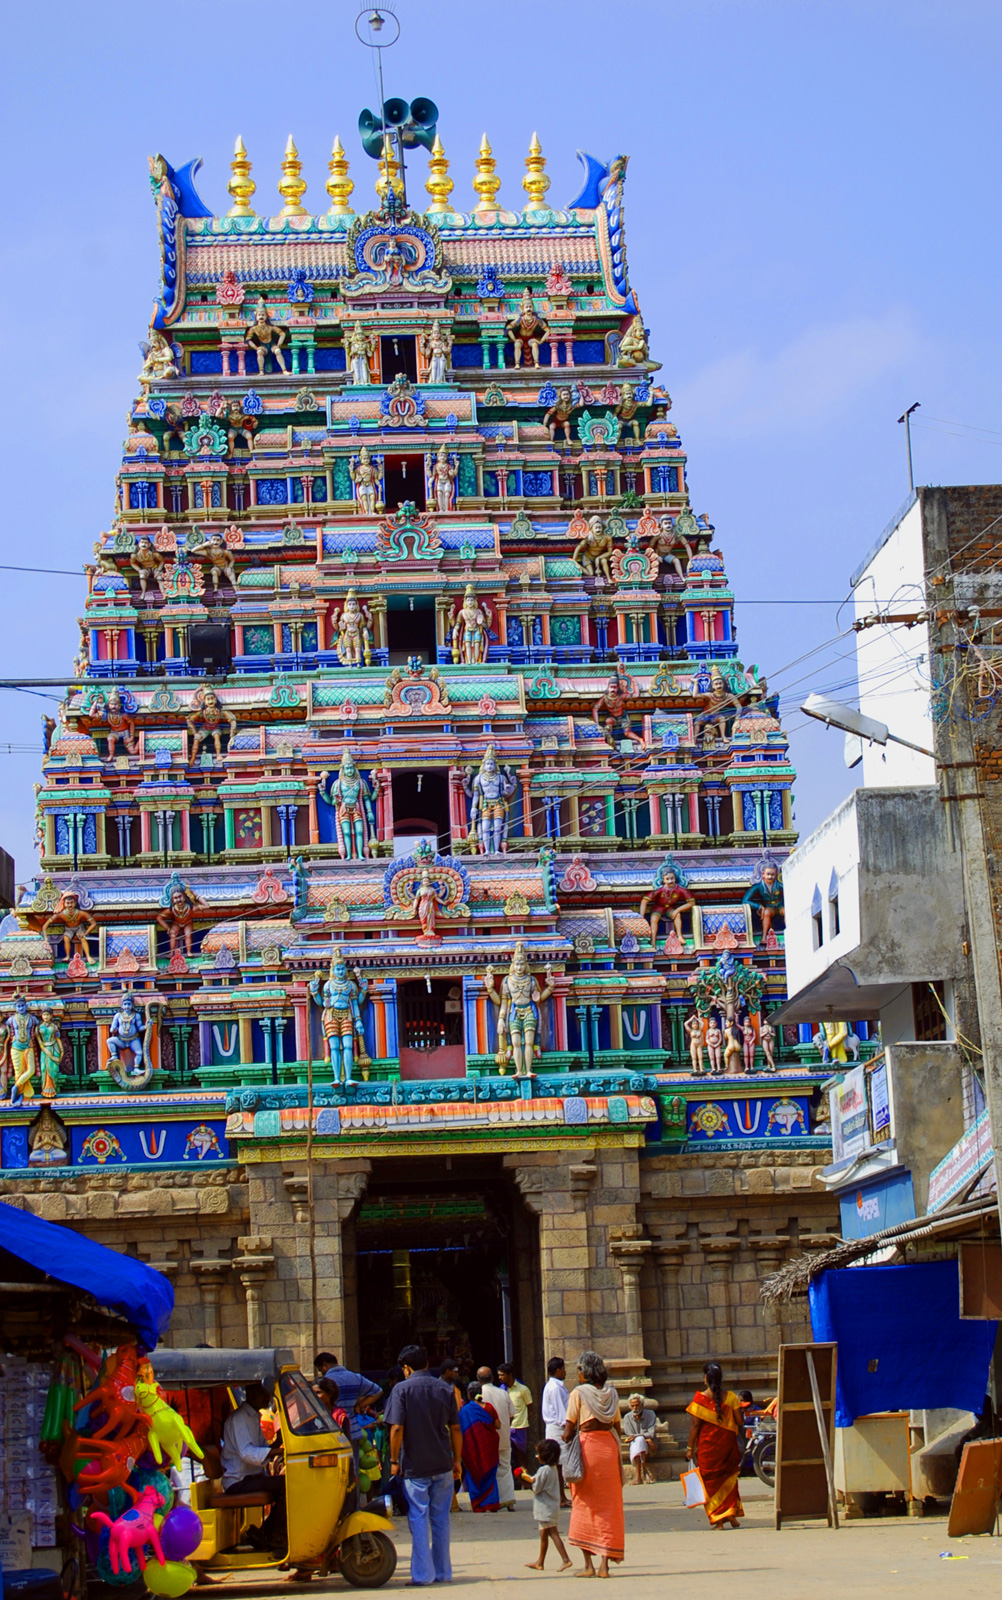 Uppiliappan Temple aka Thiruvinnagar of Venkatachalapathy Temple